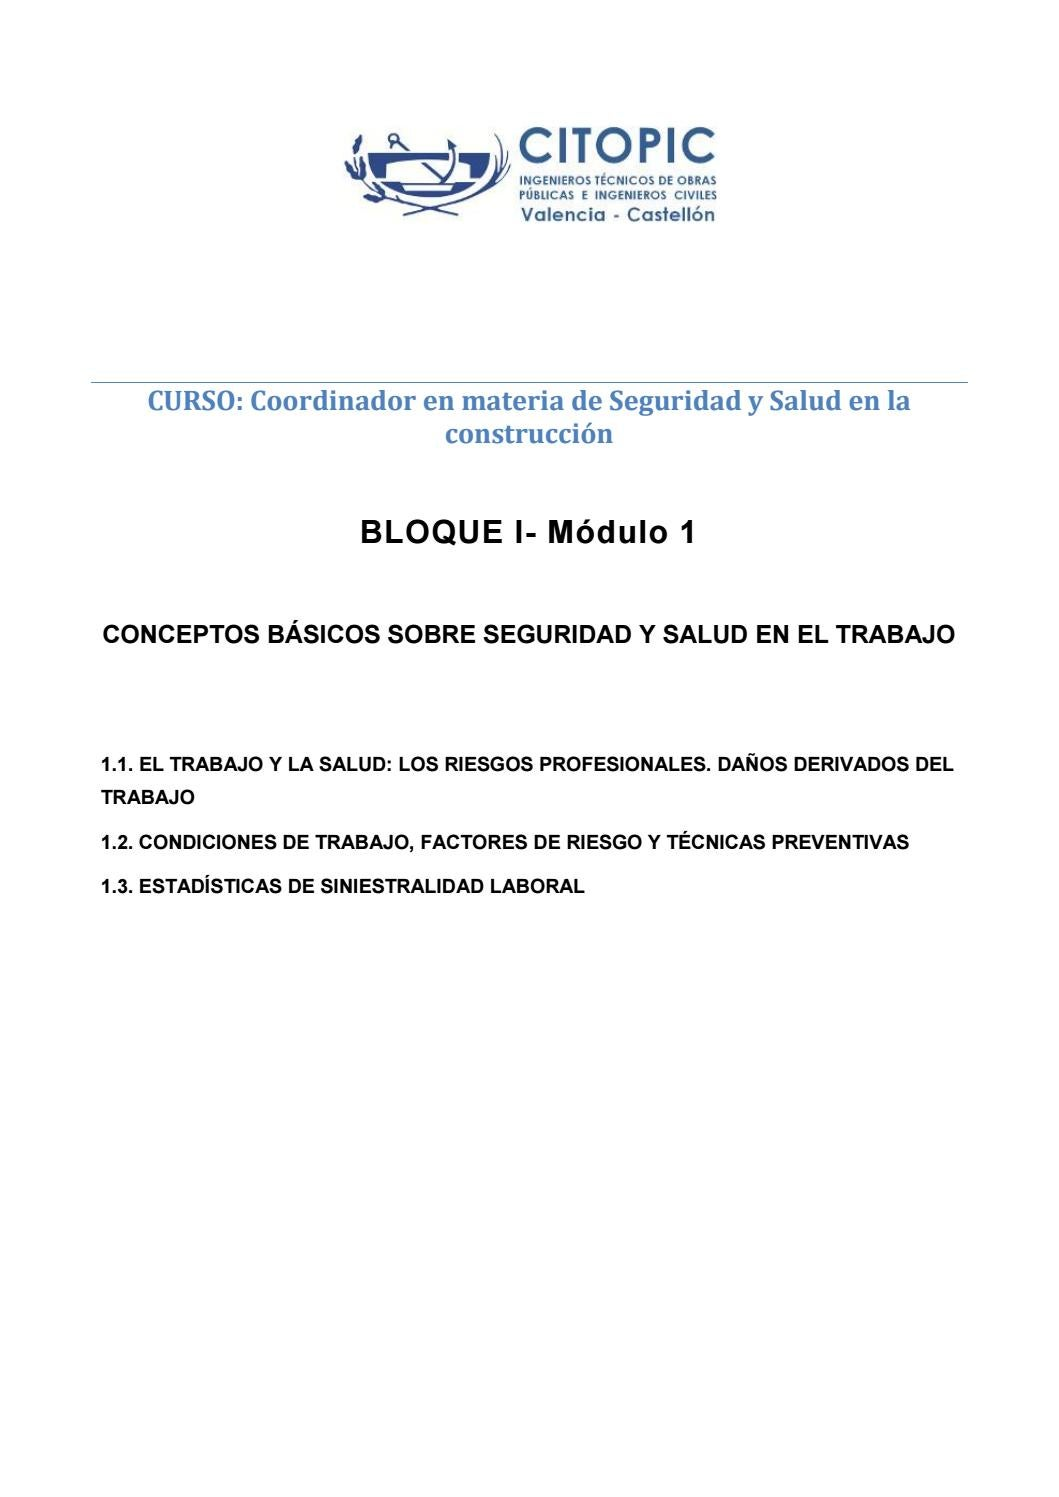 Csys Bloque I Modulo 1 By Citopic Cv Issuu